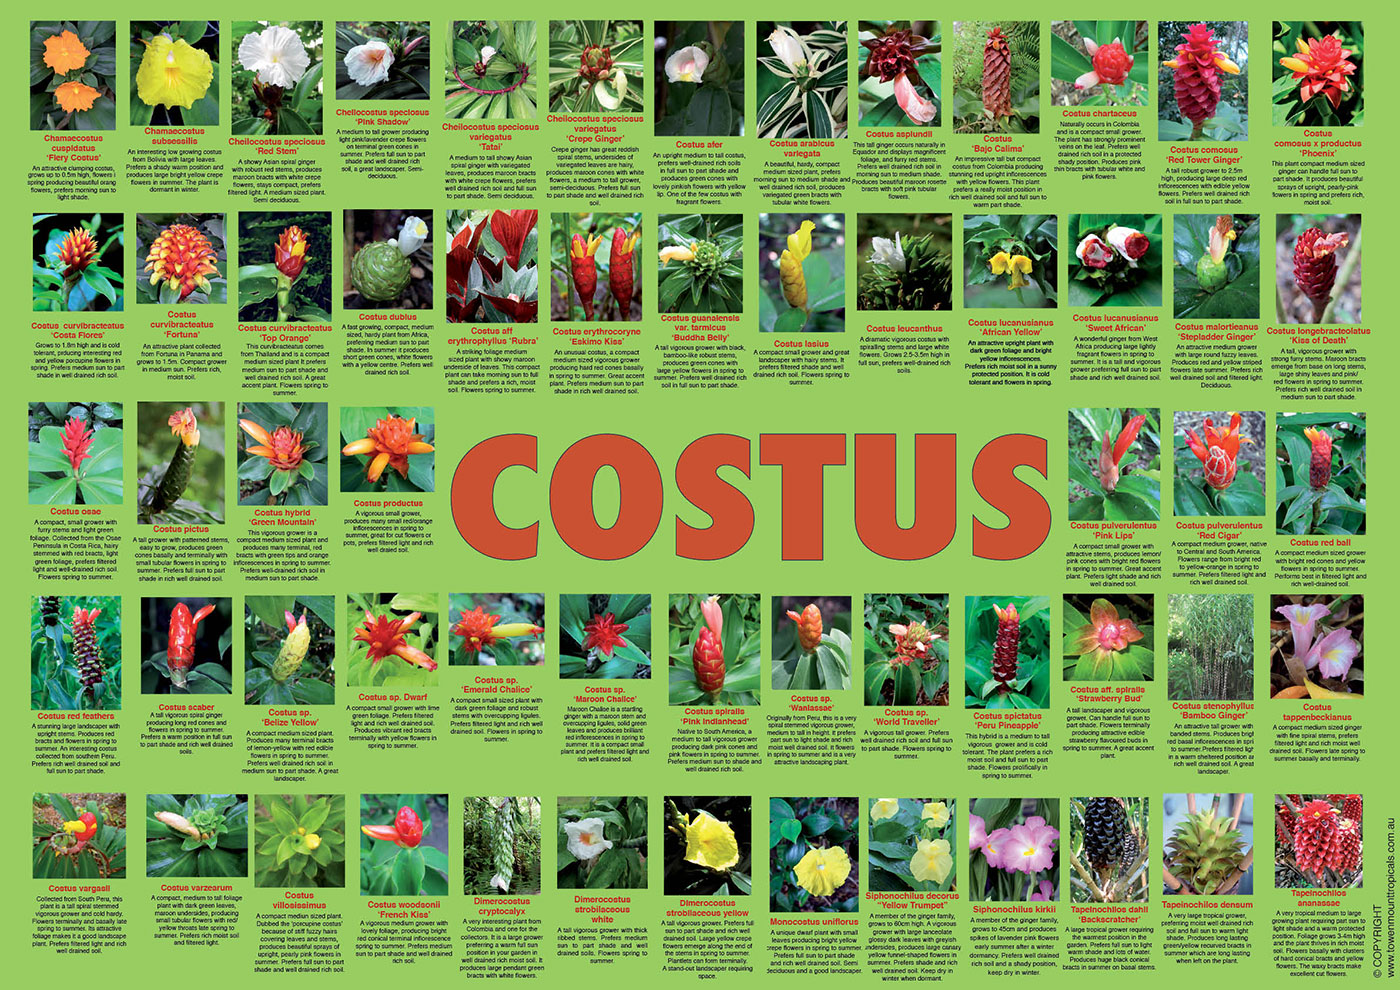 costus-poster-web-1400px